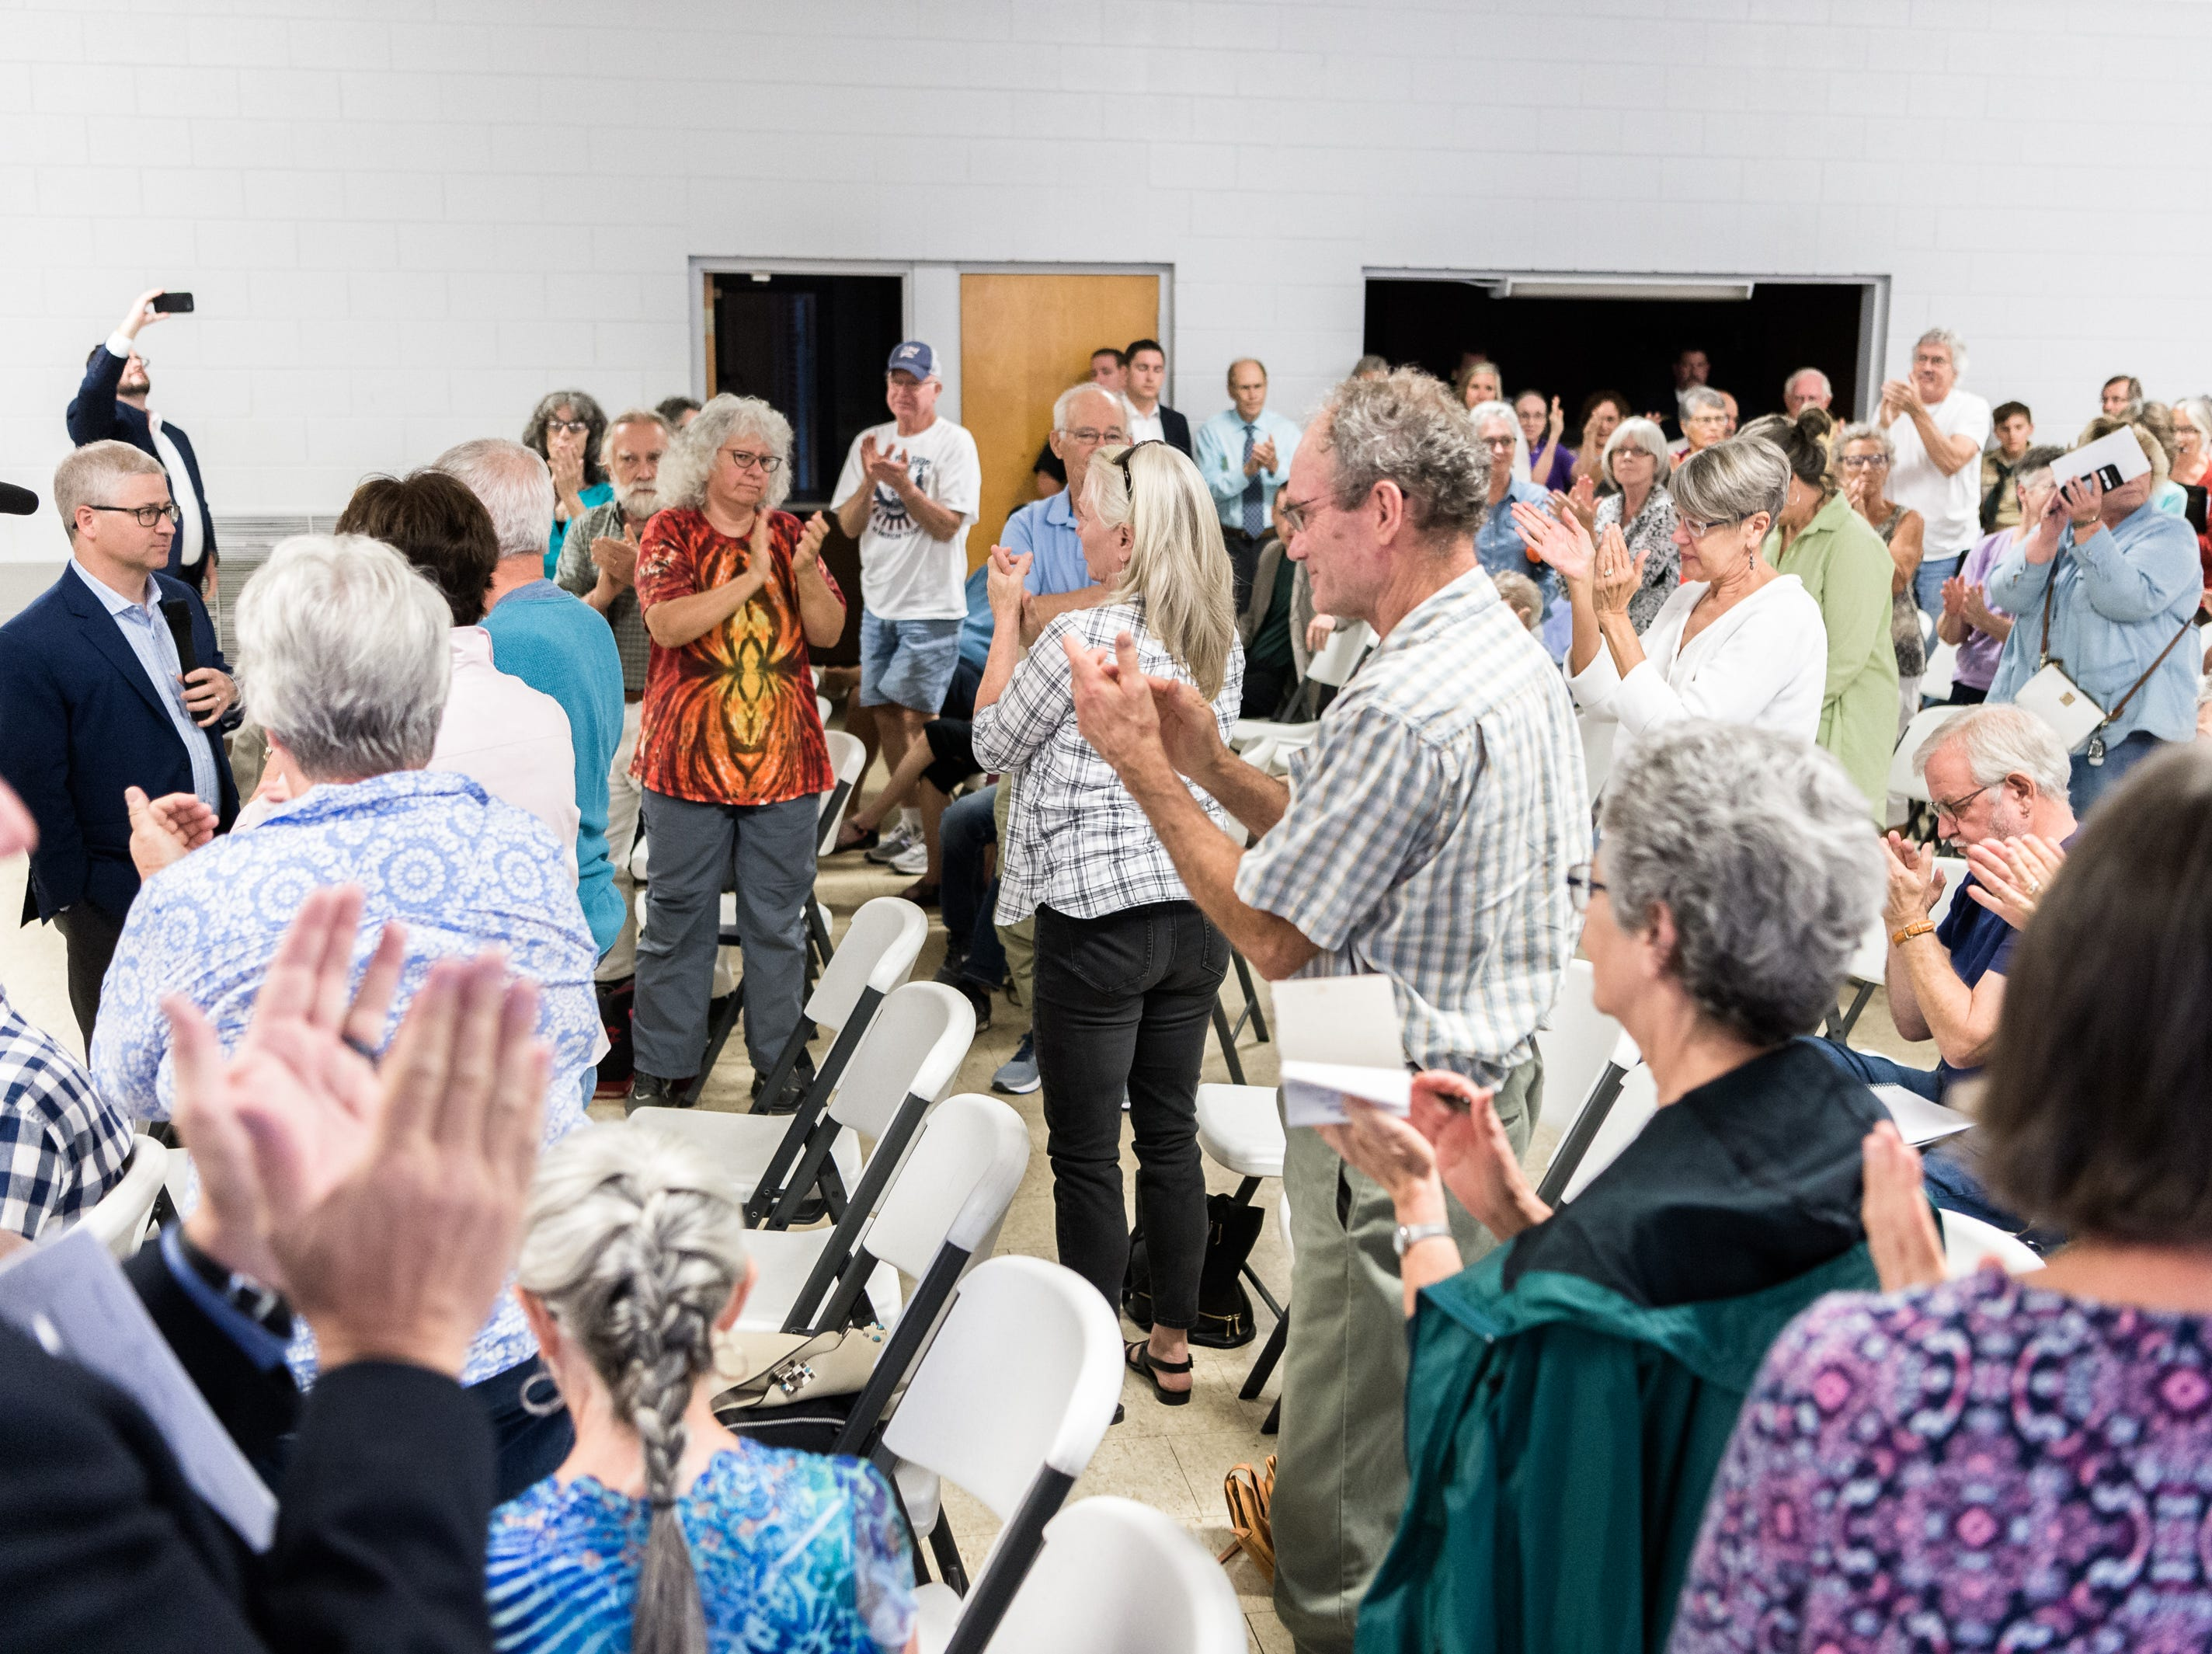 Attendees of a town hall meeting with Patrick McHenry, the U.S representative for North Carolina's 10th congressional district at the Riceville Volunteer Fire Department applaud an audience member's questions during the meeting at the Riceville Volunteer Fire Department Wednesday, August 1, 2018.